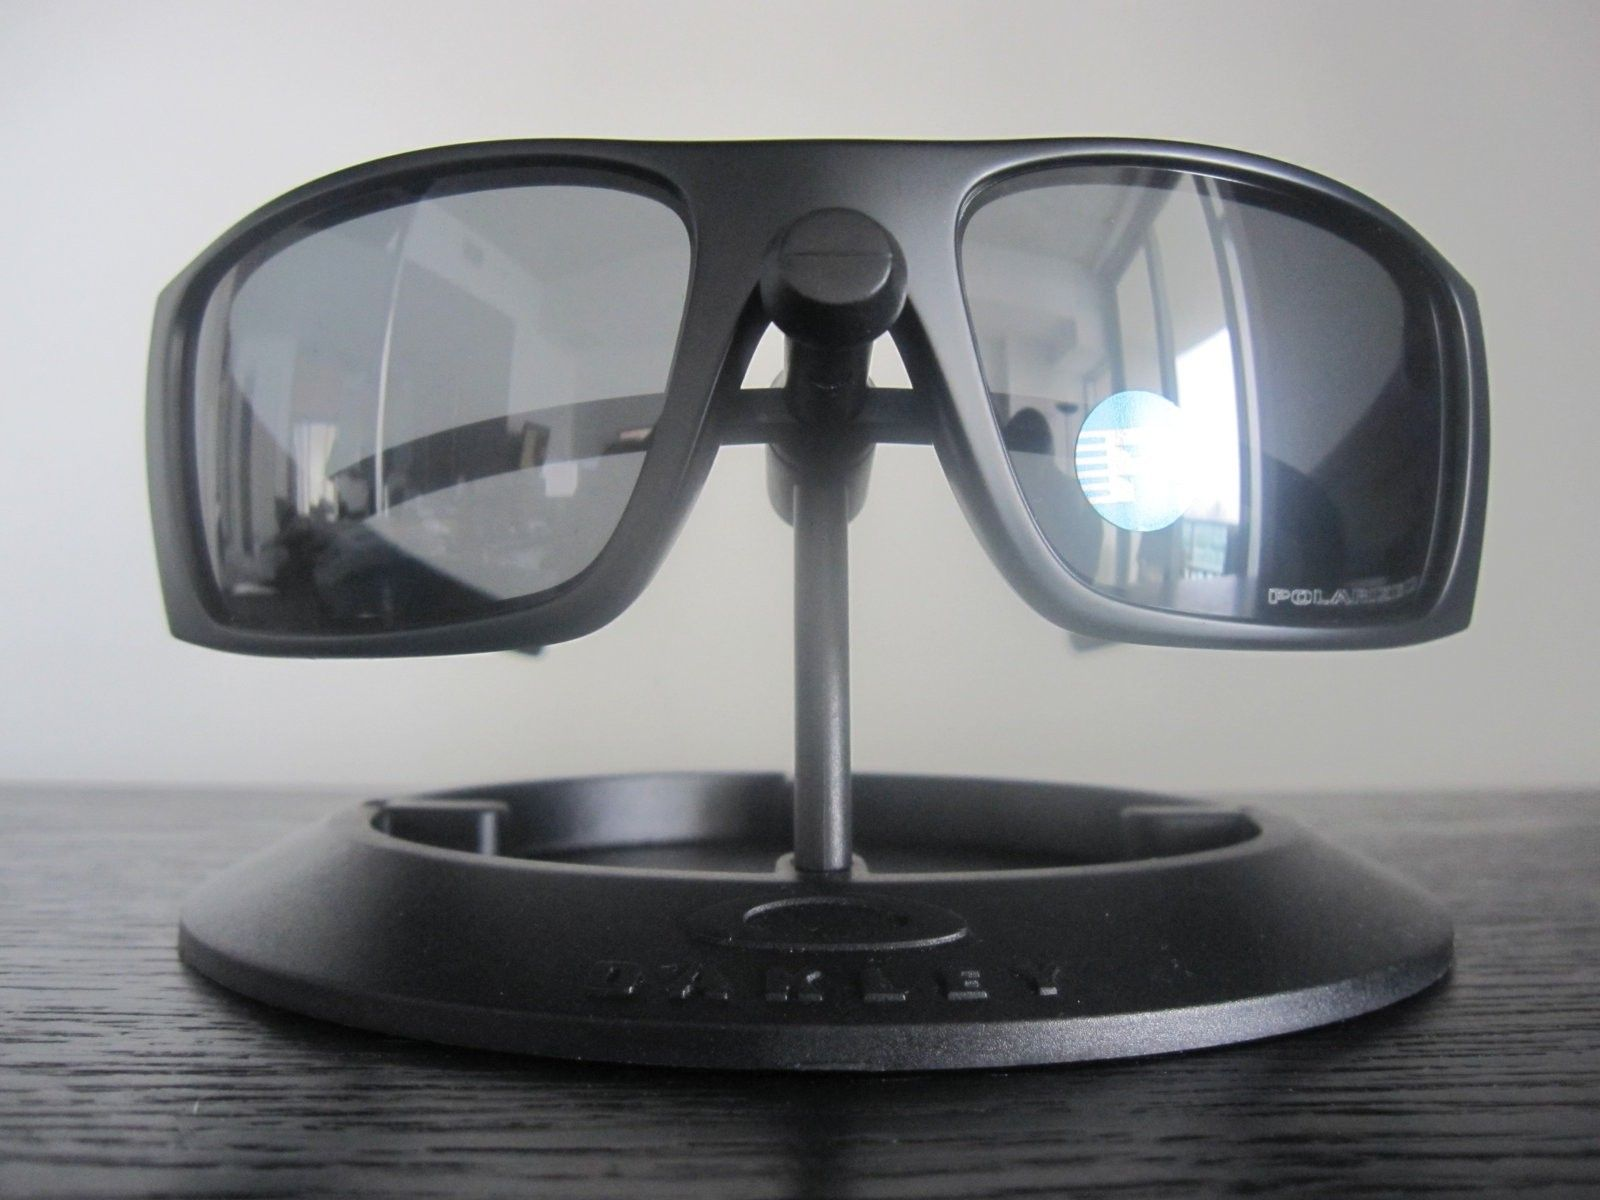 BNIB Fuel Cell Matte Black/Grey Polarized - SKU 9096-05 - IMG_5173.JPG